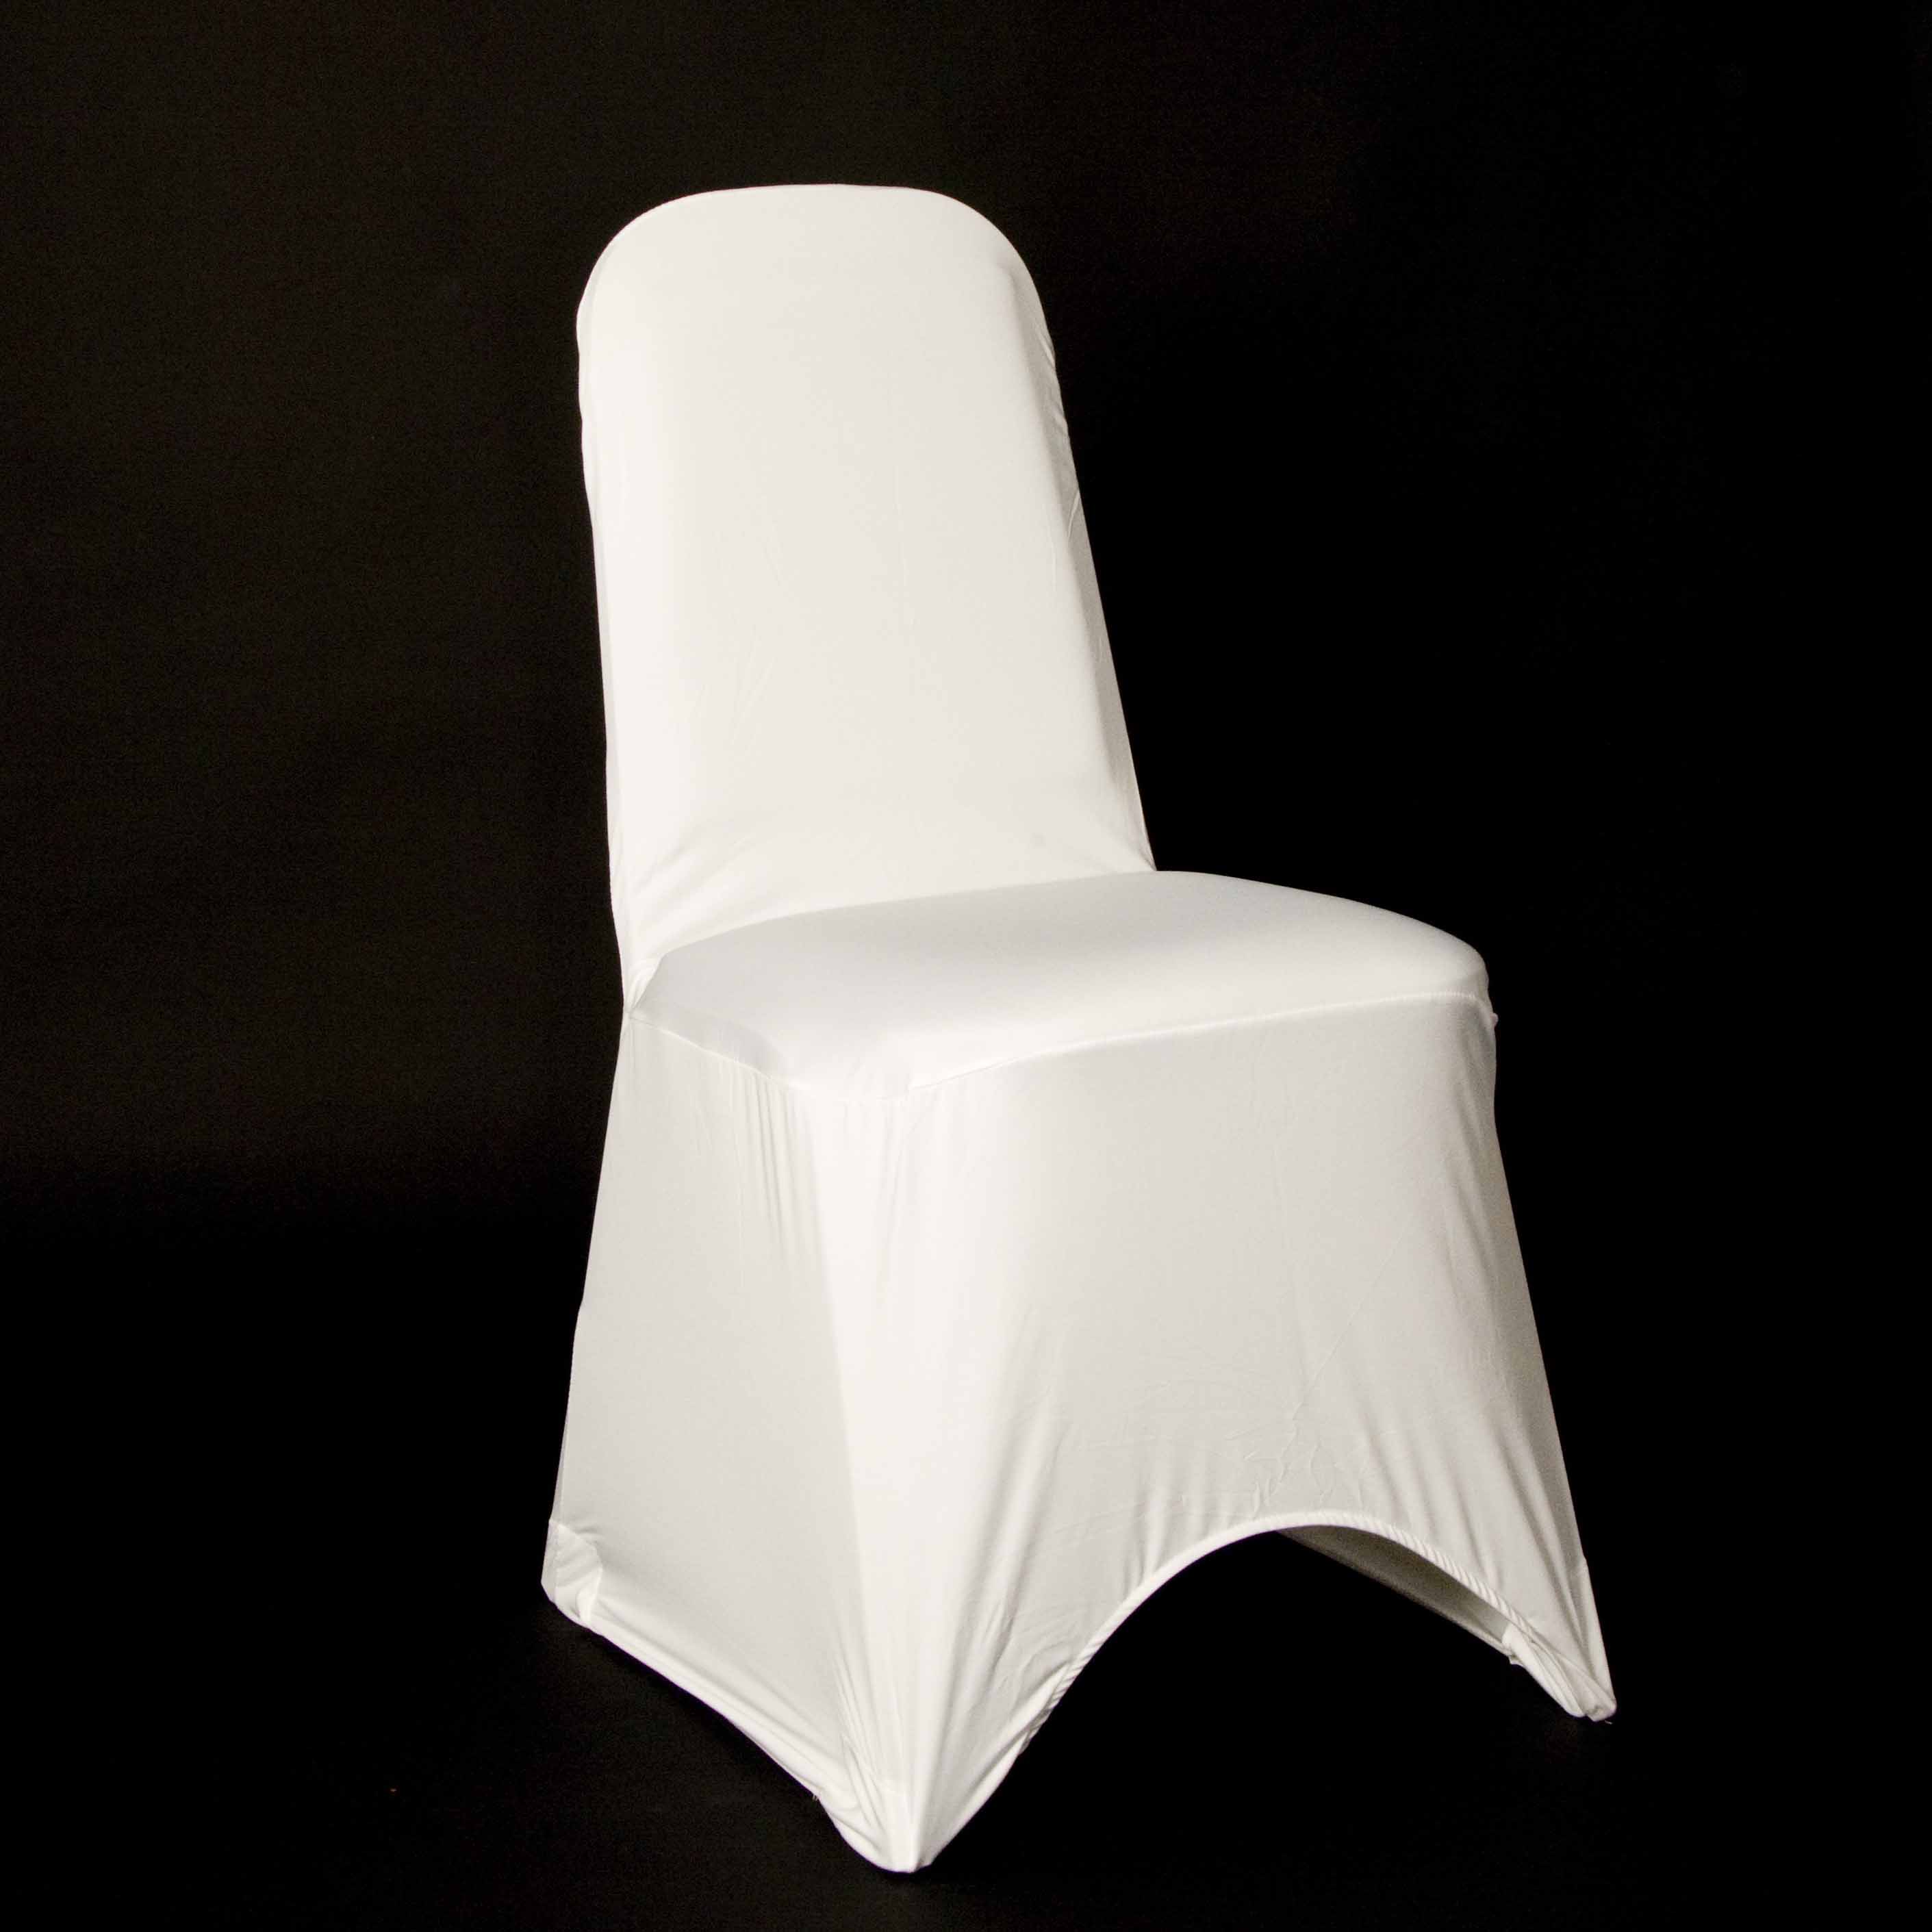 Marvelous Lycra Chair Cover White Andrewgaddart Wooden Chair Designs For Living Room Andrewgaddartcom